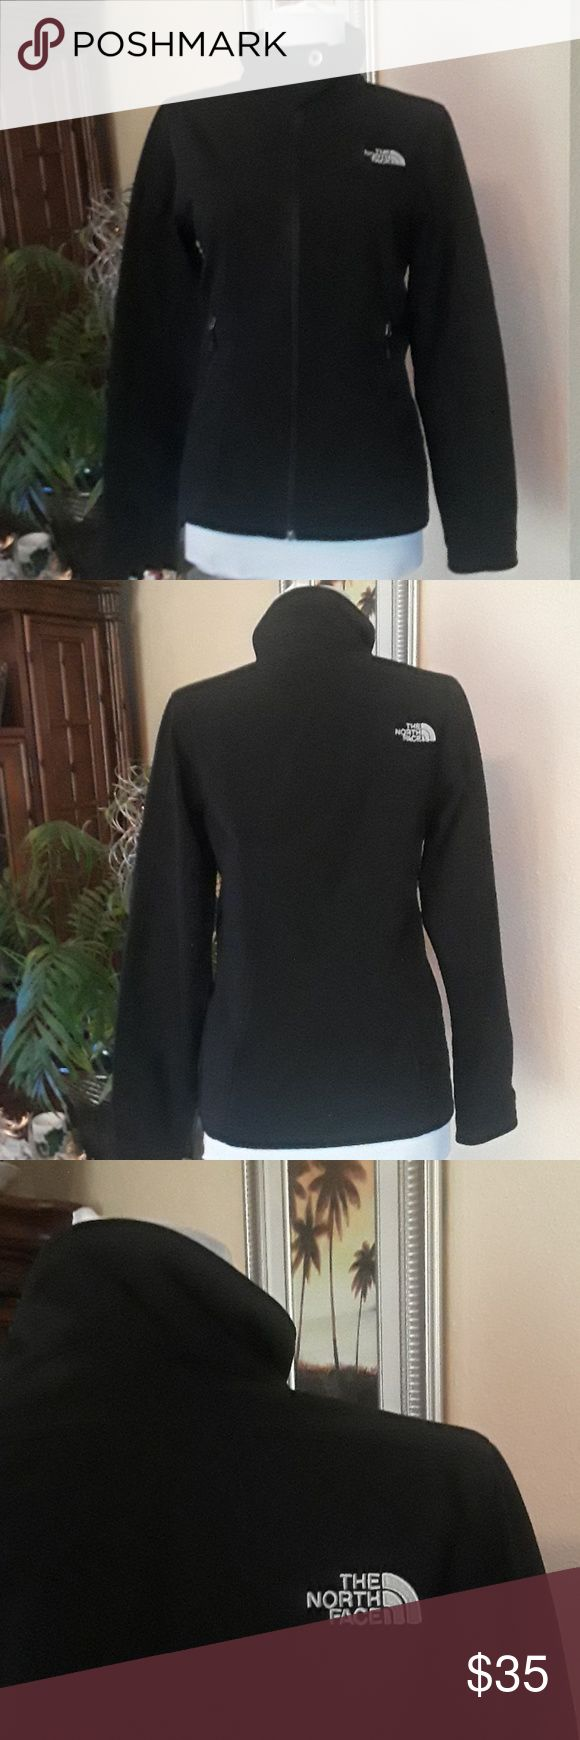 The North Face Jacket (women's) The North Face Jacket (women's),100%polyester,color black. The North Face Jackets & Coats